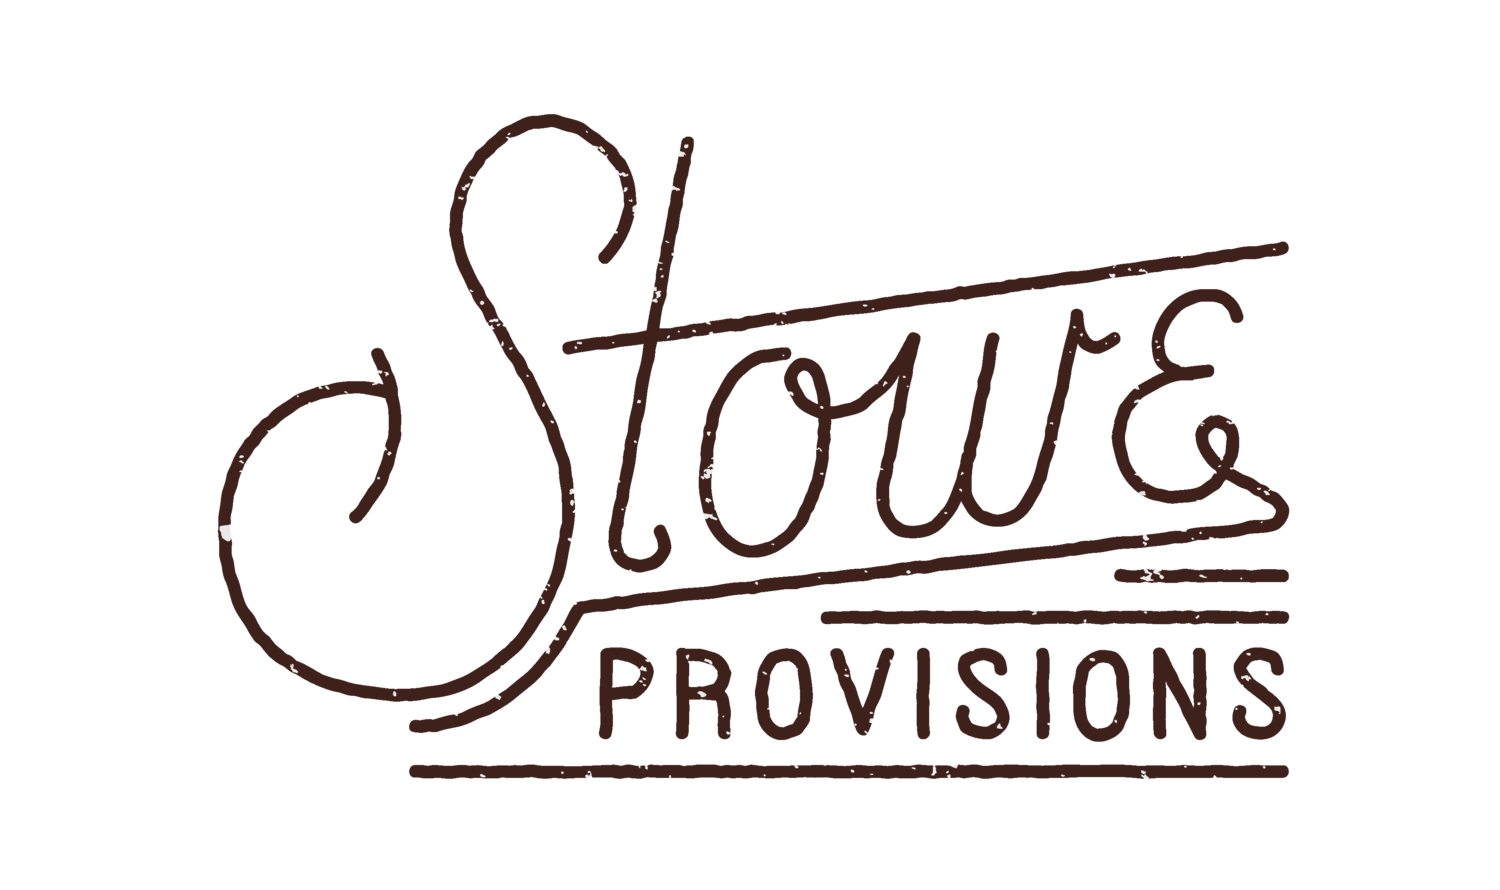 stowe provisions